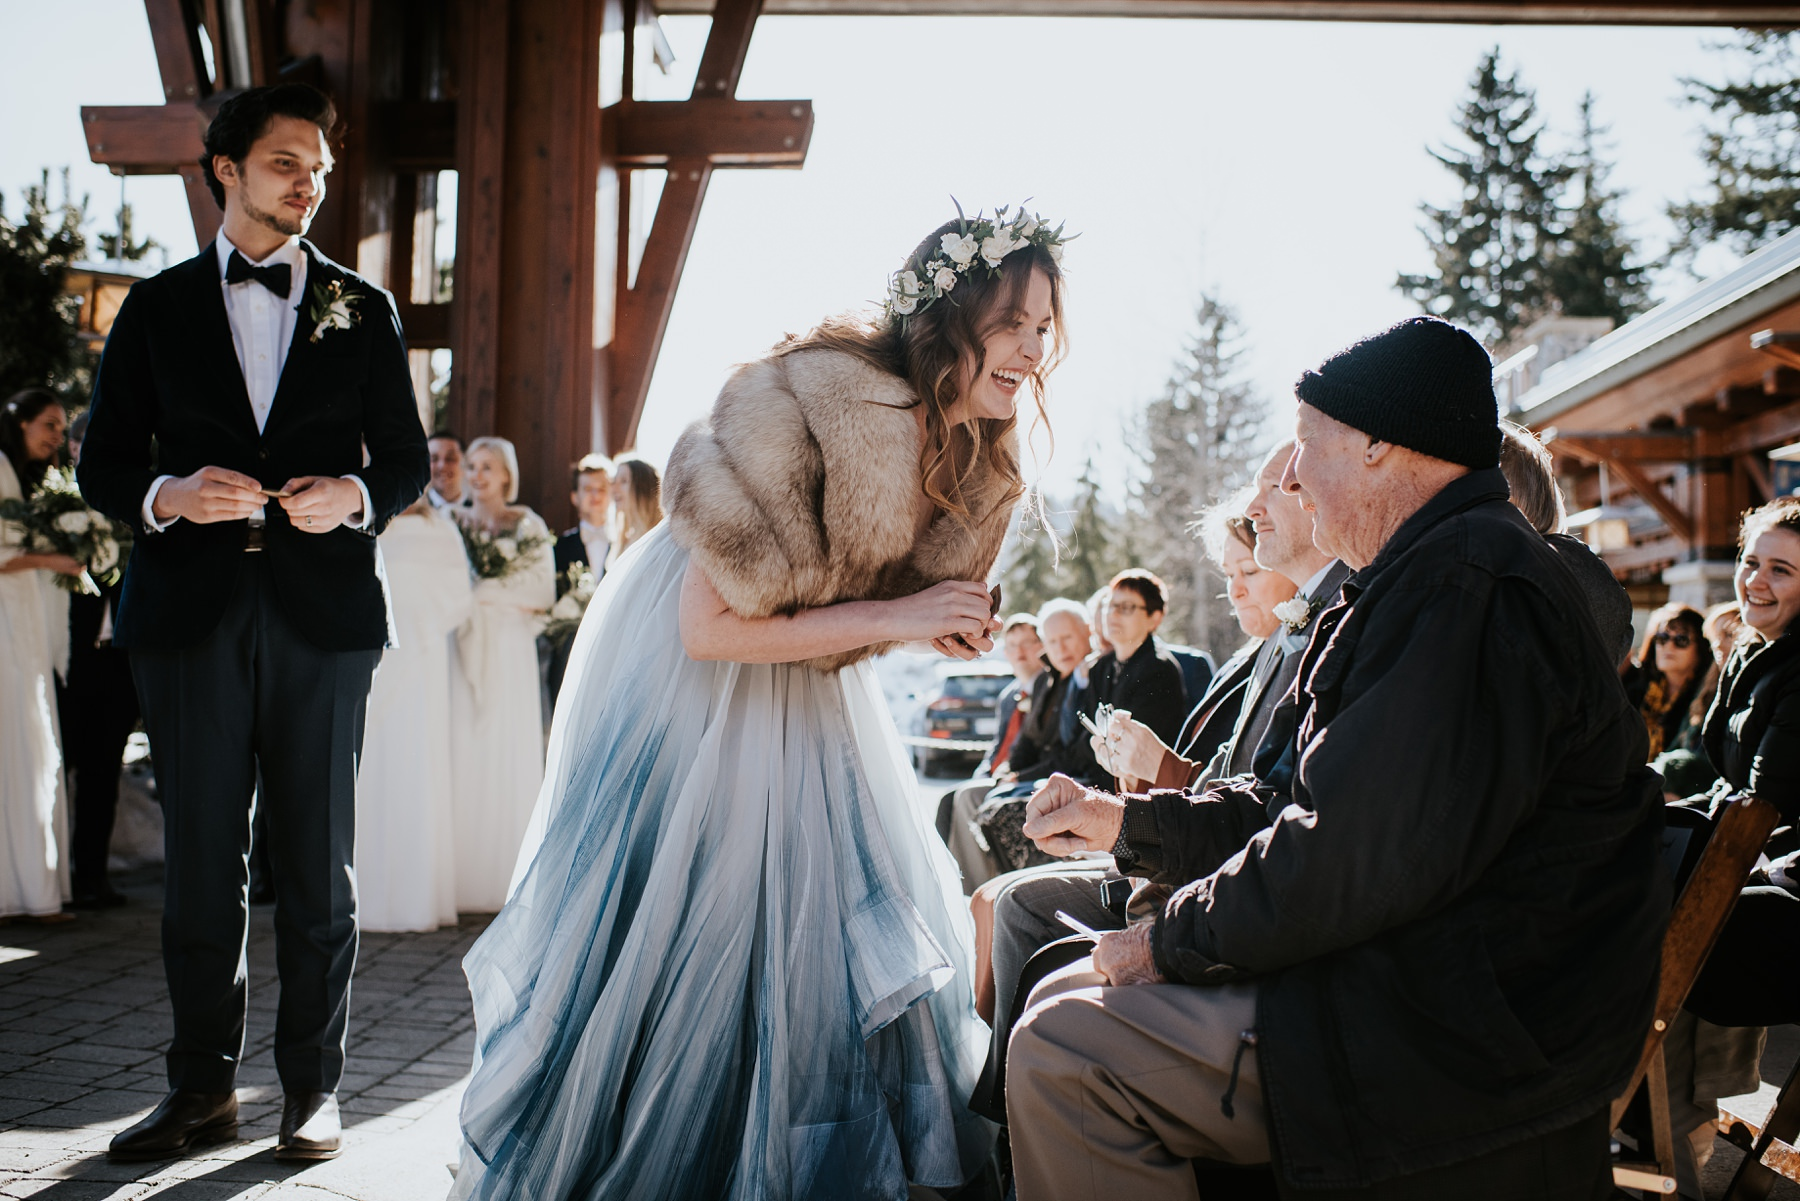 bride laughing with guests at outdoor wedding ceremony